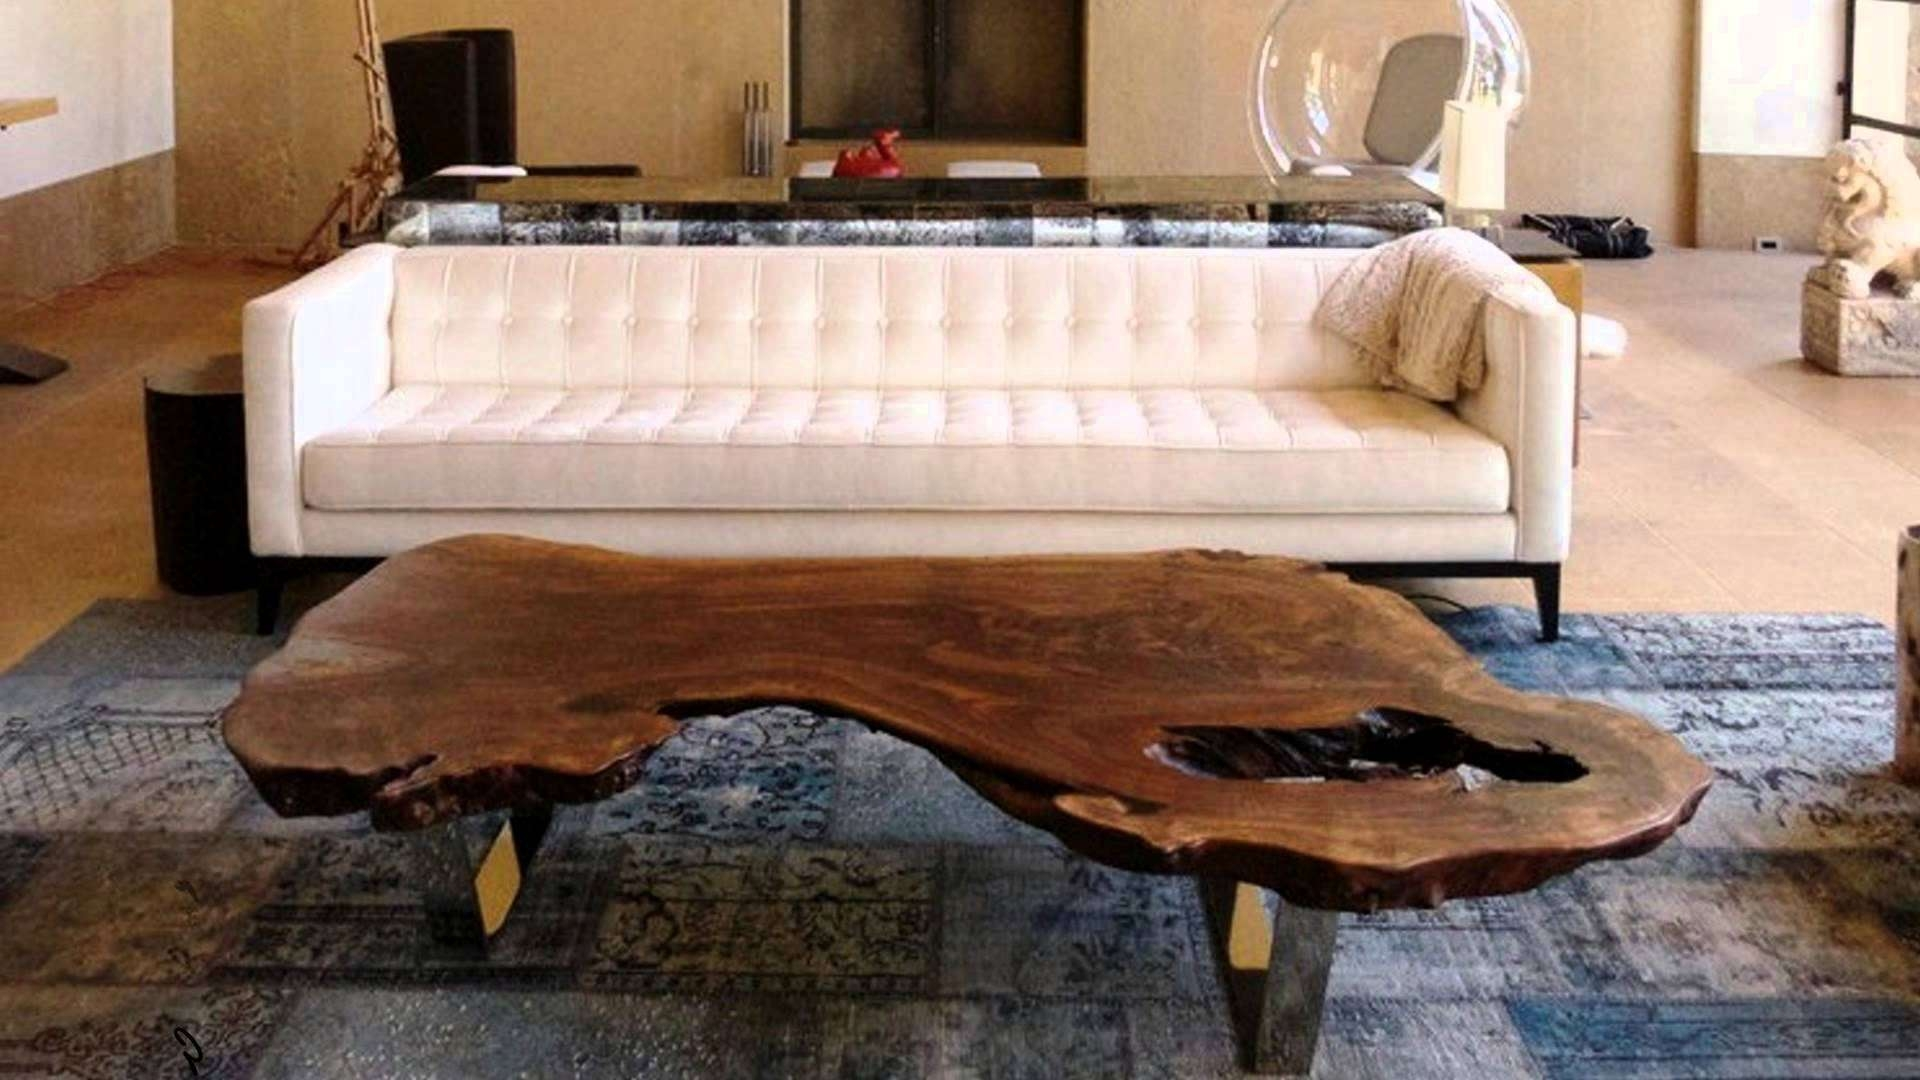 Most Recently Released Natural Wood Coffee Tables Inside Coffee Tables : Family Room Stagedstage Star Staging Your (View 10 of 20)